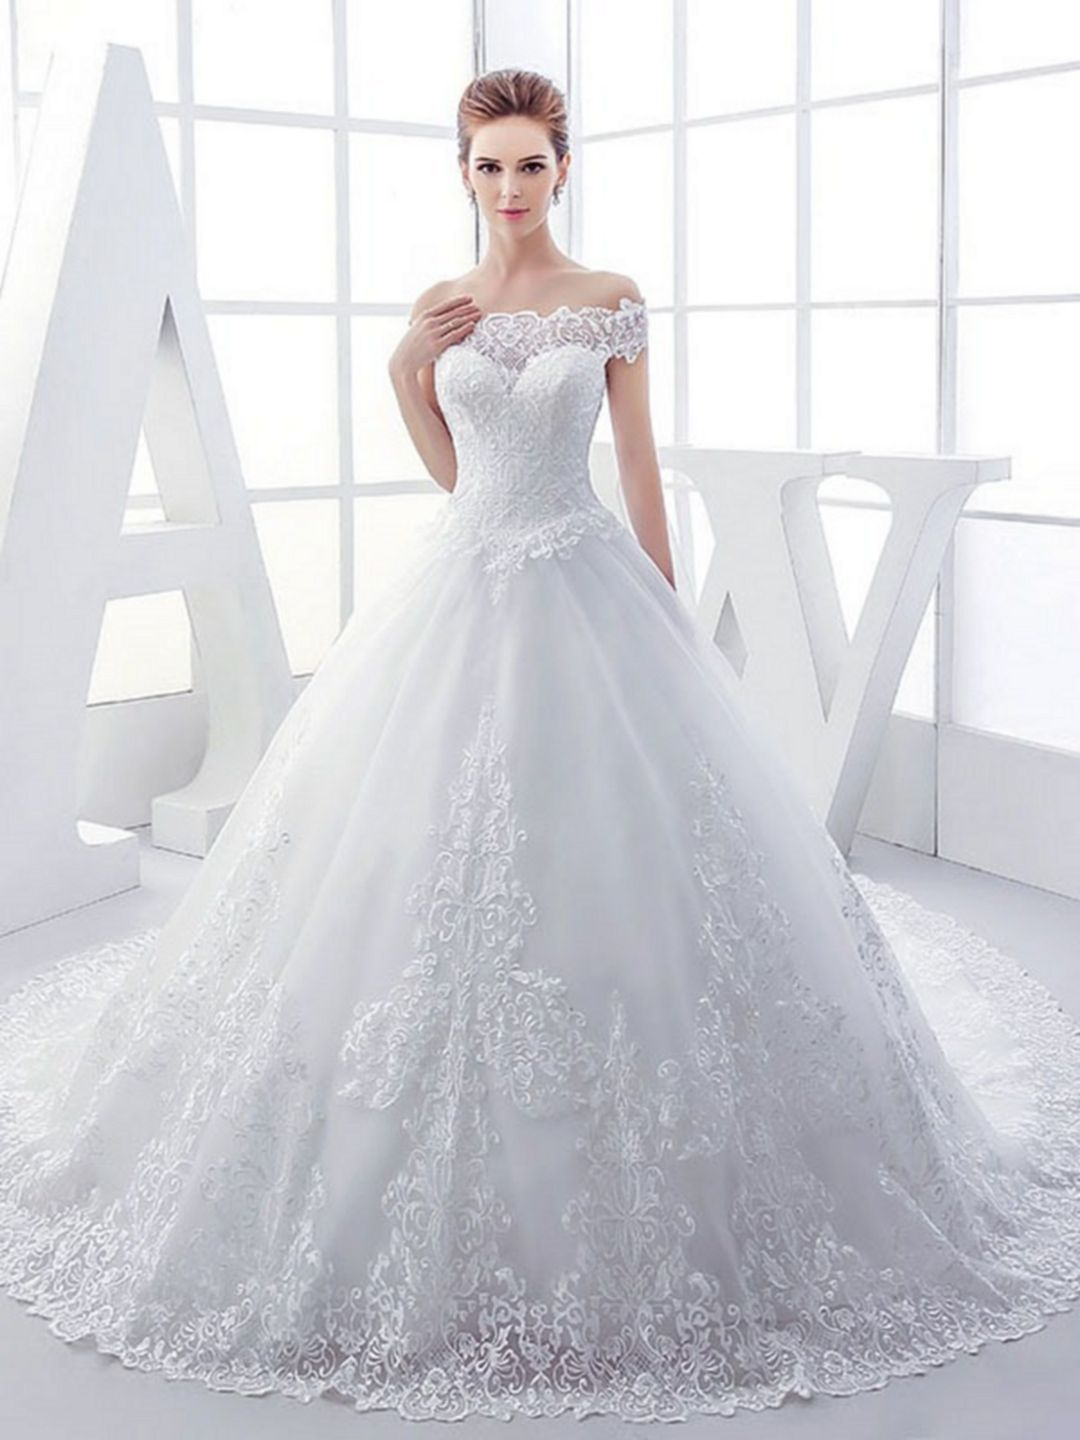 c4452e2e8c 5502 Most Beautiful White Wedding Dress Ball Gown Ideas For The Wondrous  Bride